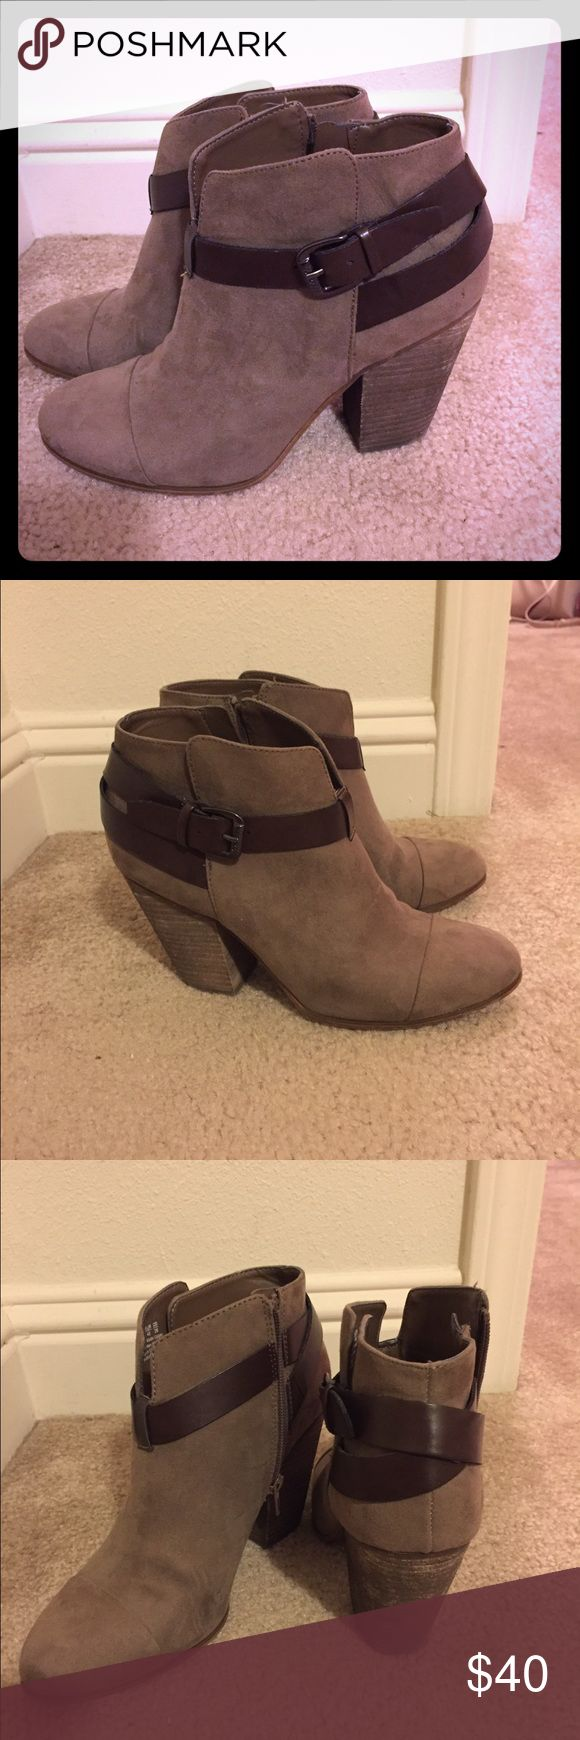 Carlos Santana Ankle Booties Tan nubuck ankle booties with brown wrap around straps. Super cute with dresses and skinny jeans. Make an offer! No trades Carlos Santana Shoes Ankle Boots & Booties